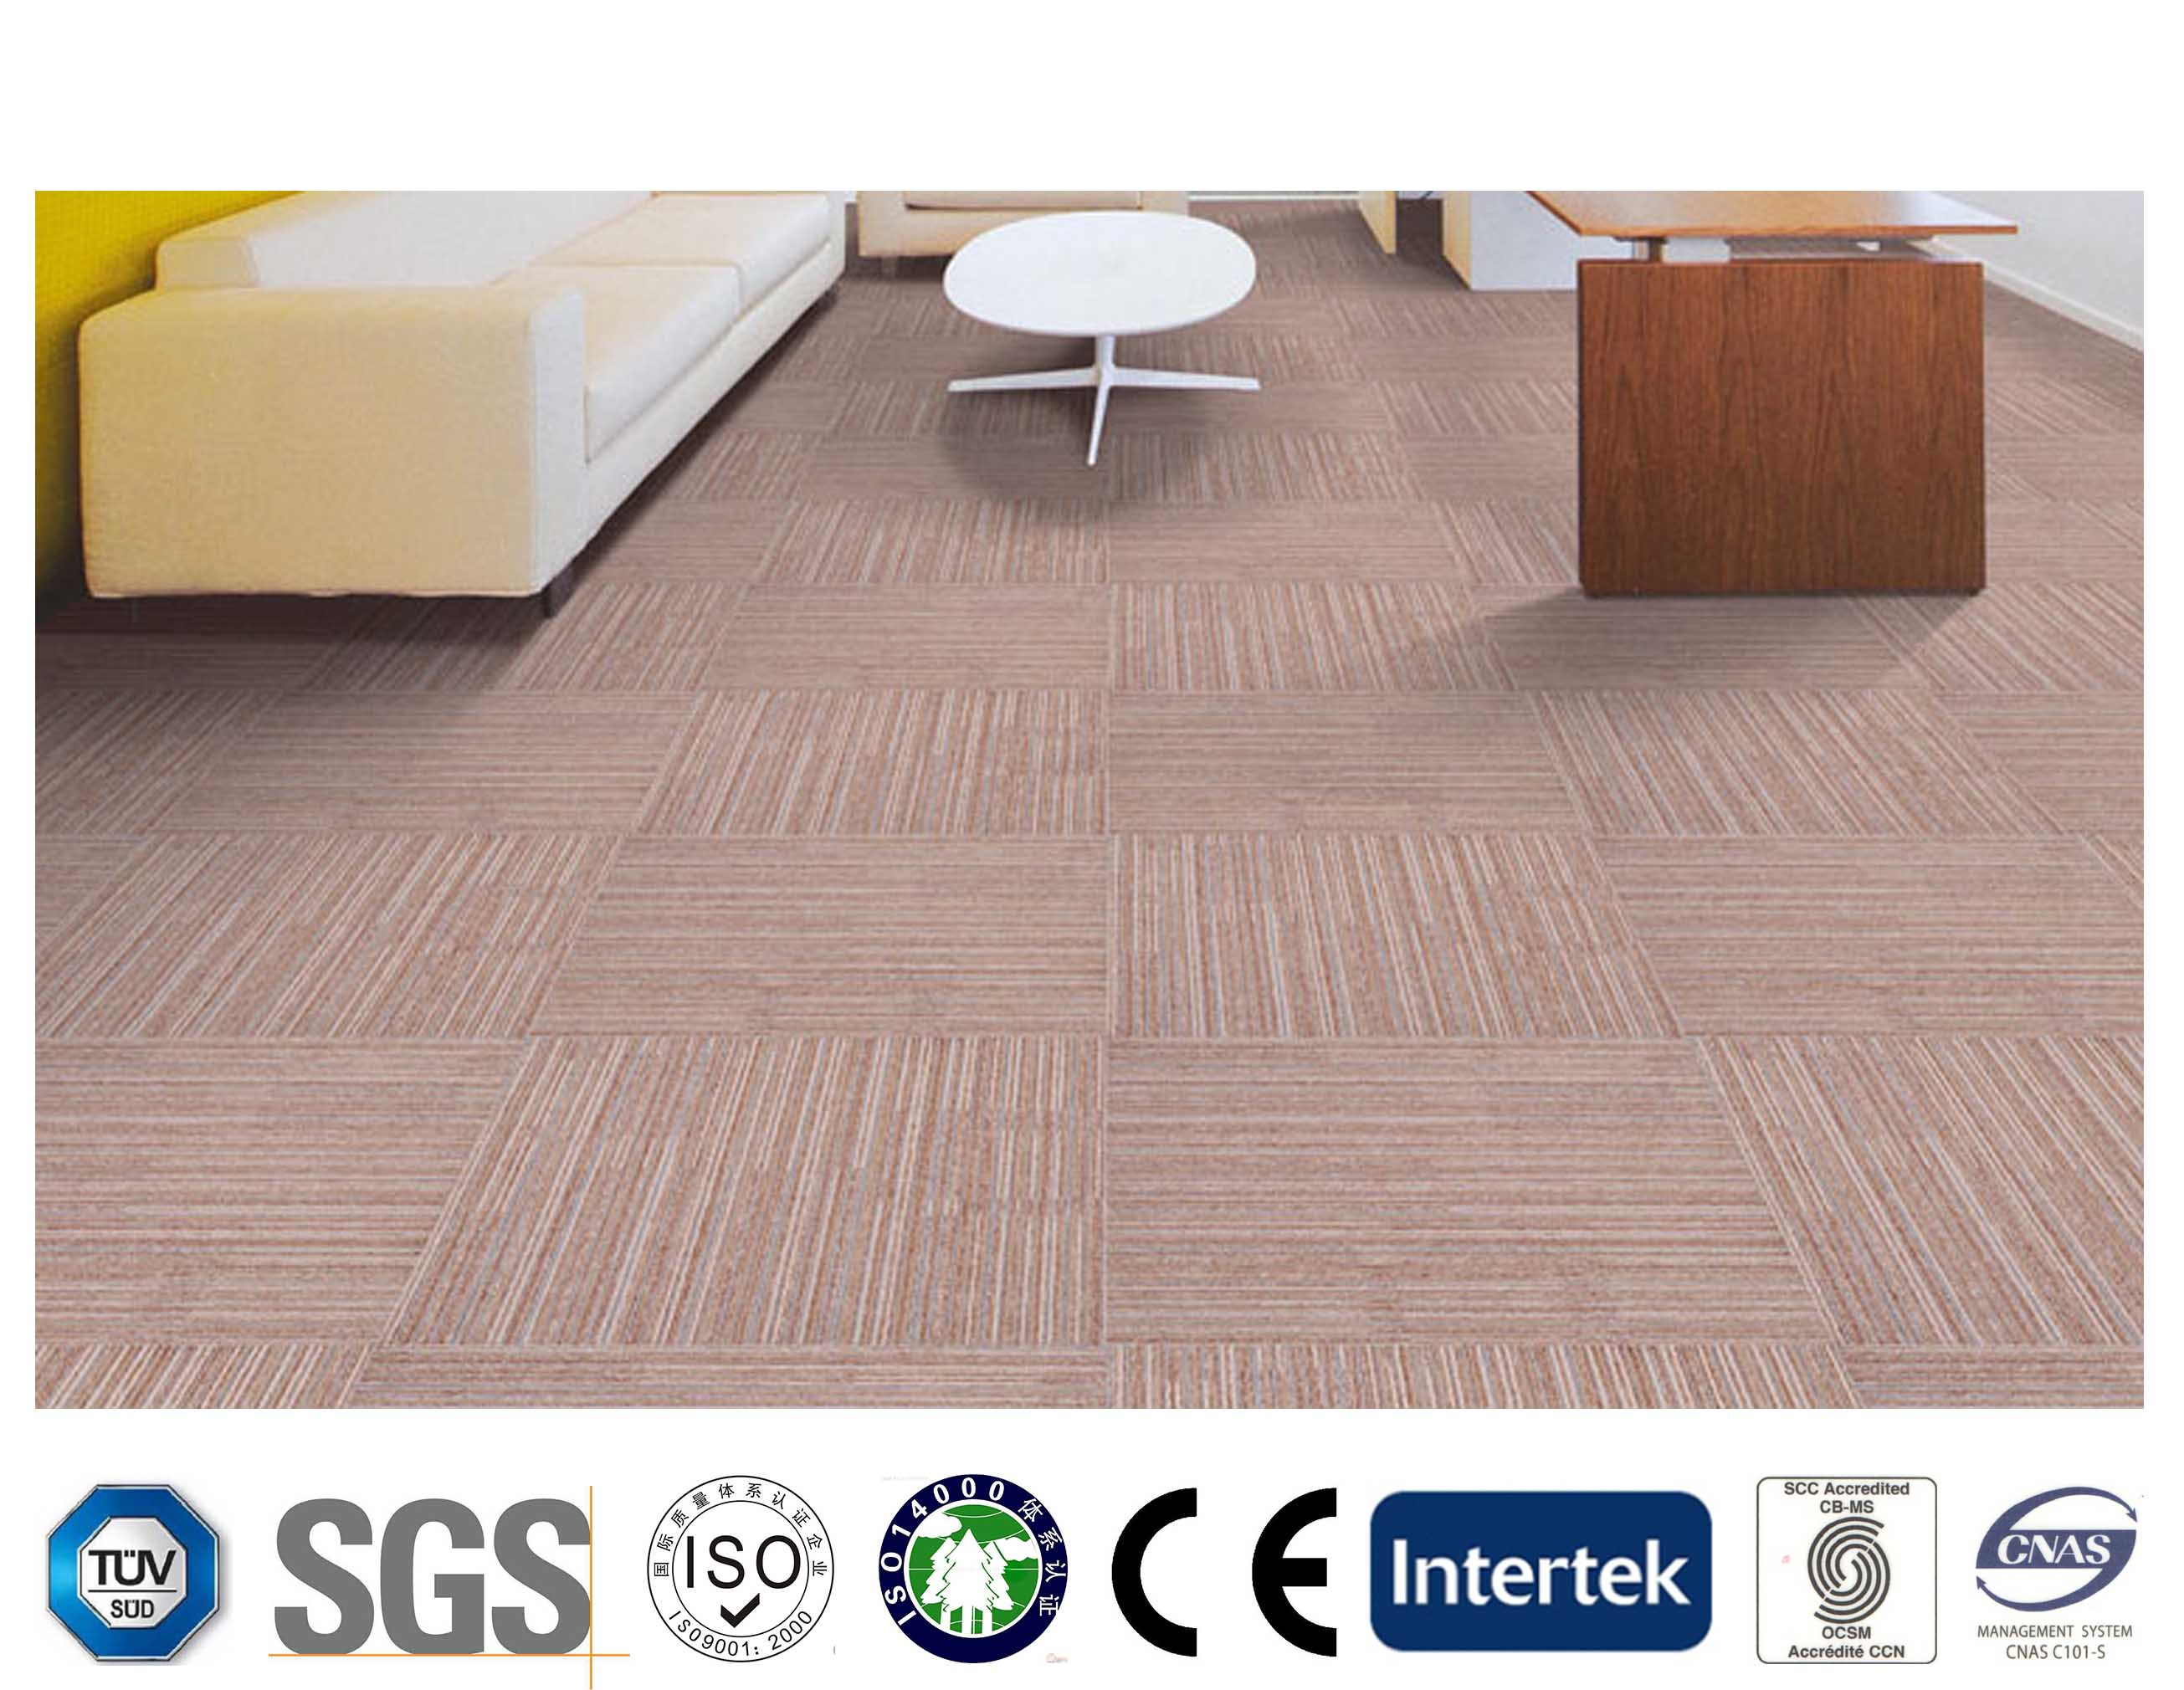 MK Series of Carpets